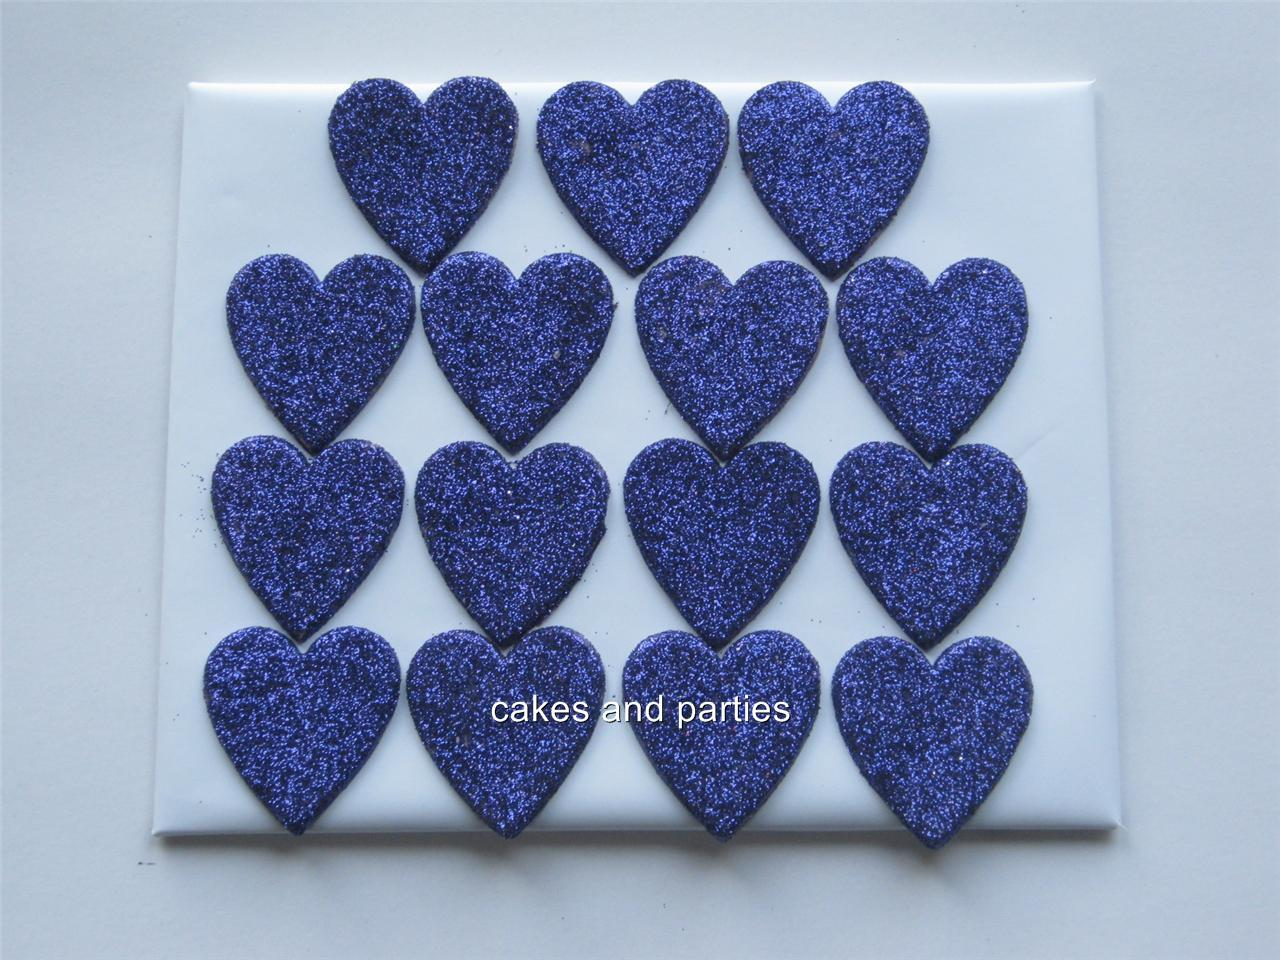 15xEDIBLE GLITTER HEARTS. CAKE DECORATIONS - VARIOUS ...